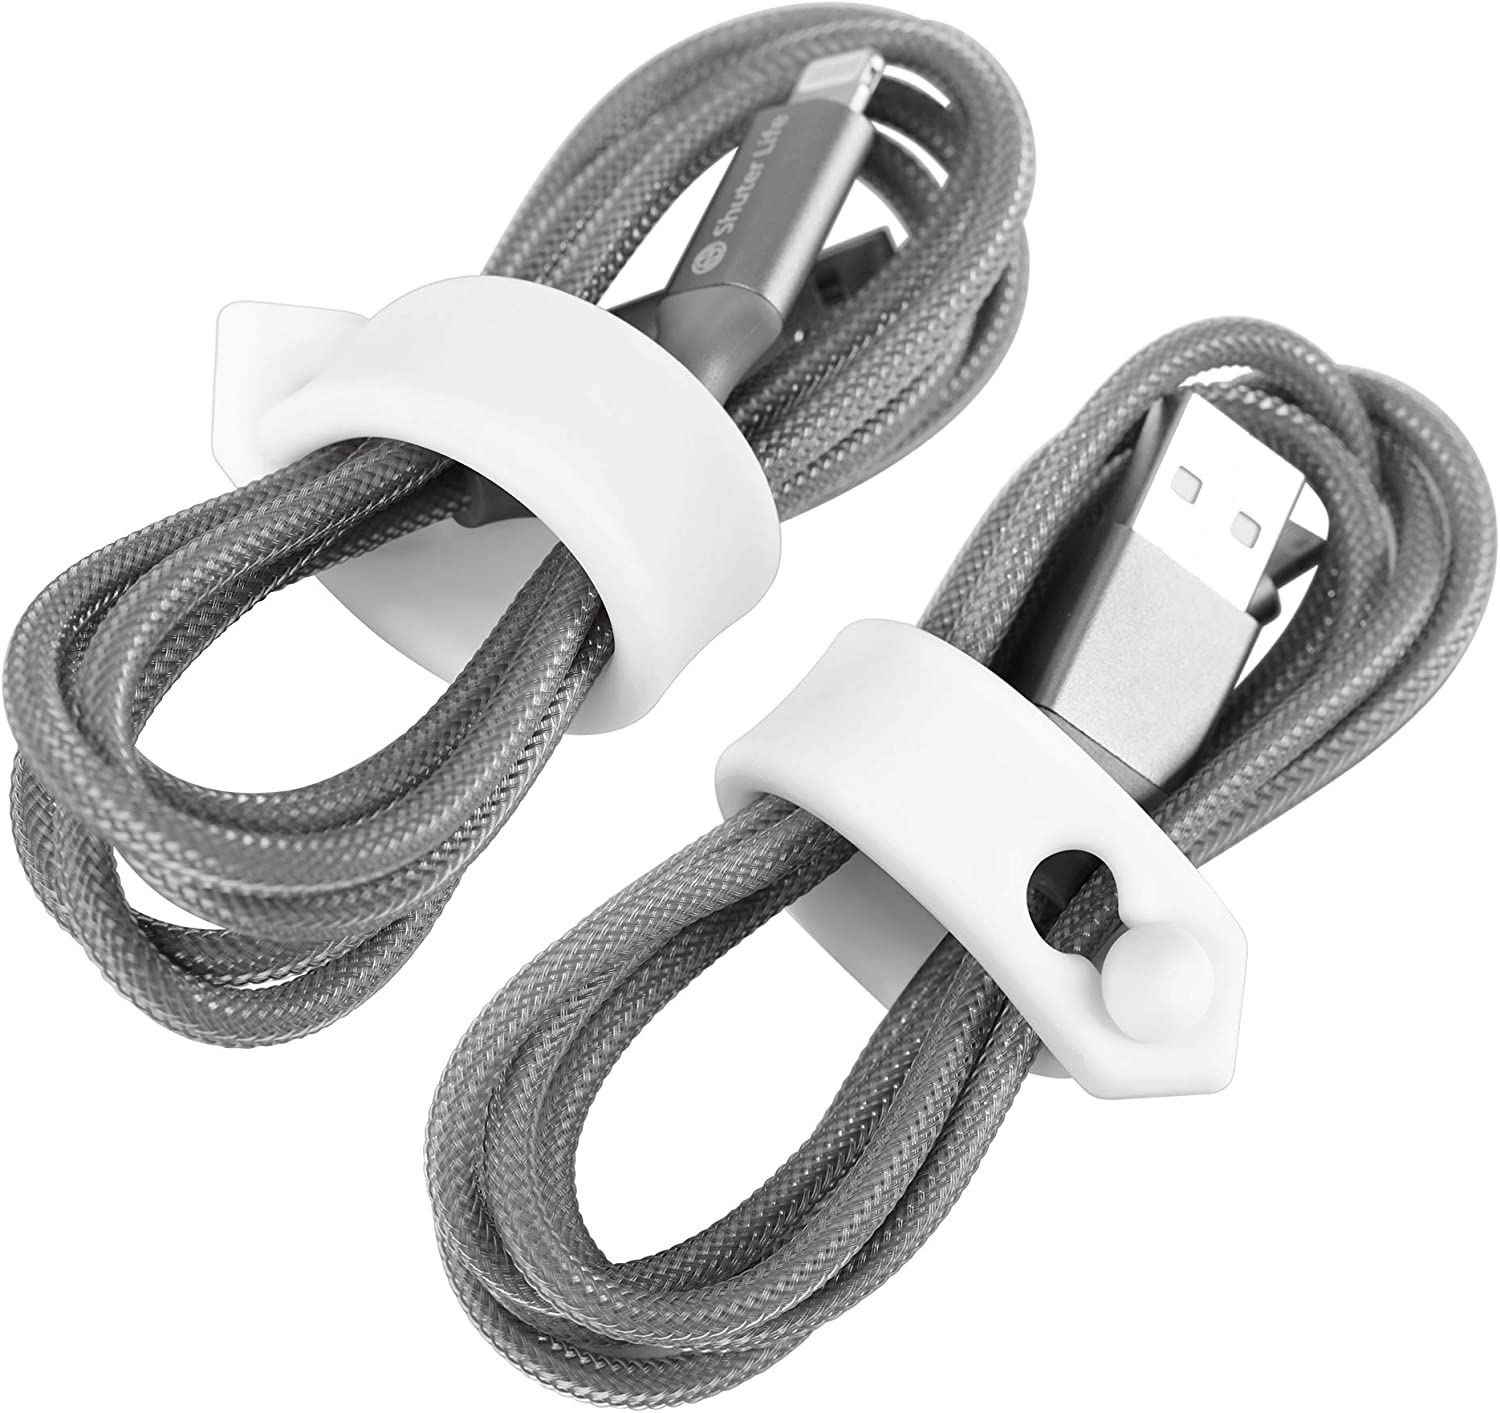 ELFRhino Cord Organizer Cable Straps Clips Wire Ties Earbuds Earphone Headphone Headset Wrap Winder Holder Keeper Manager Management Set of 9